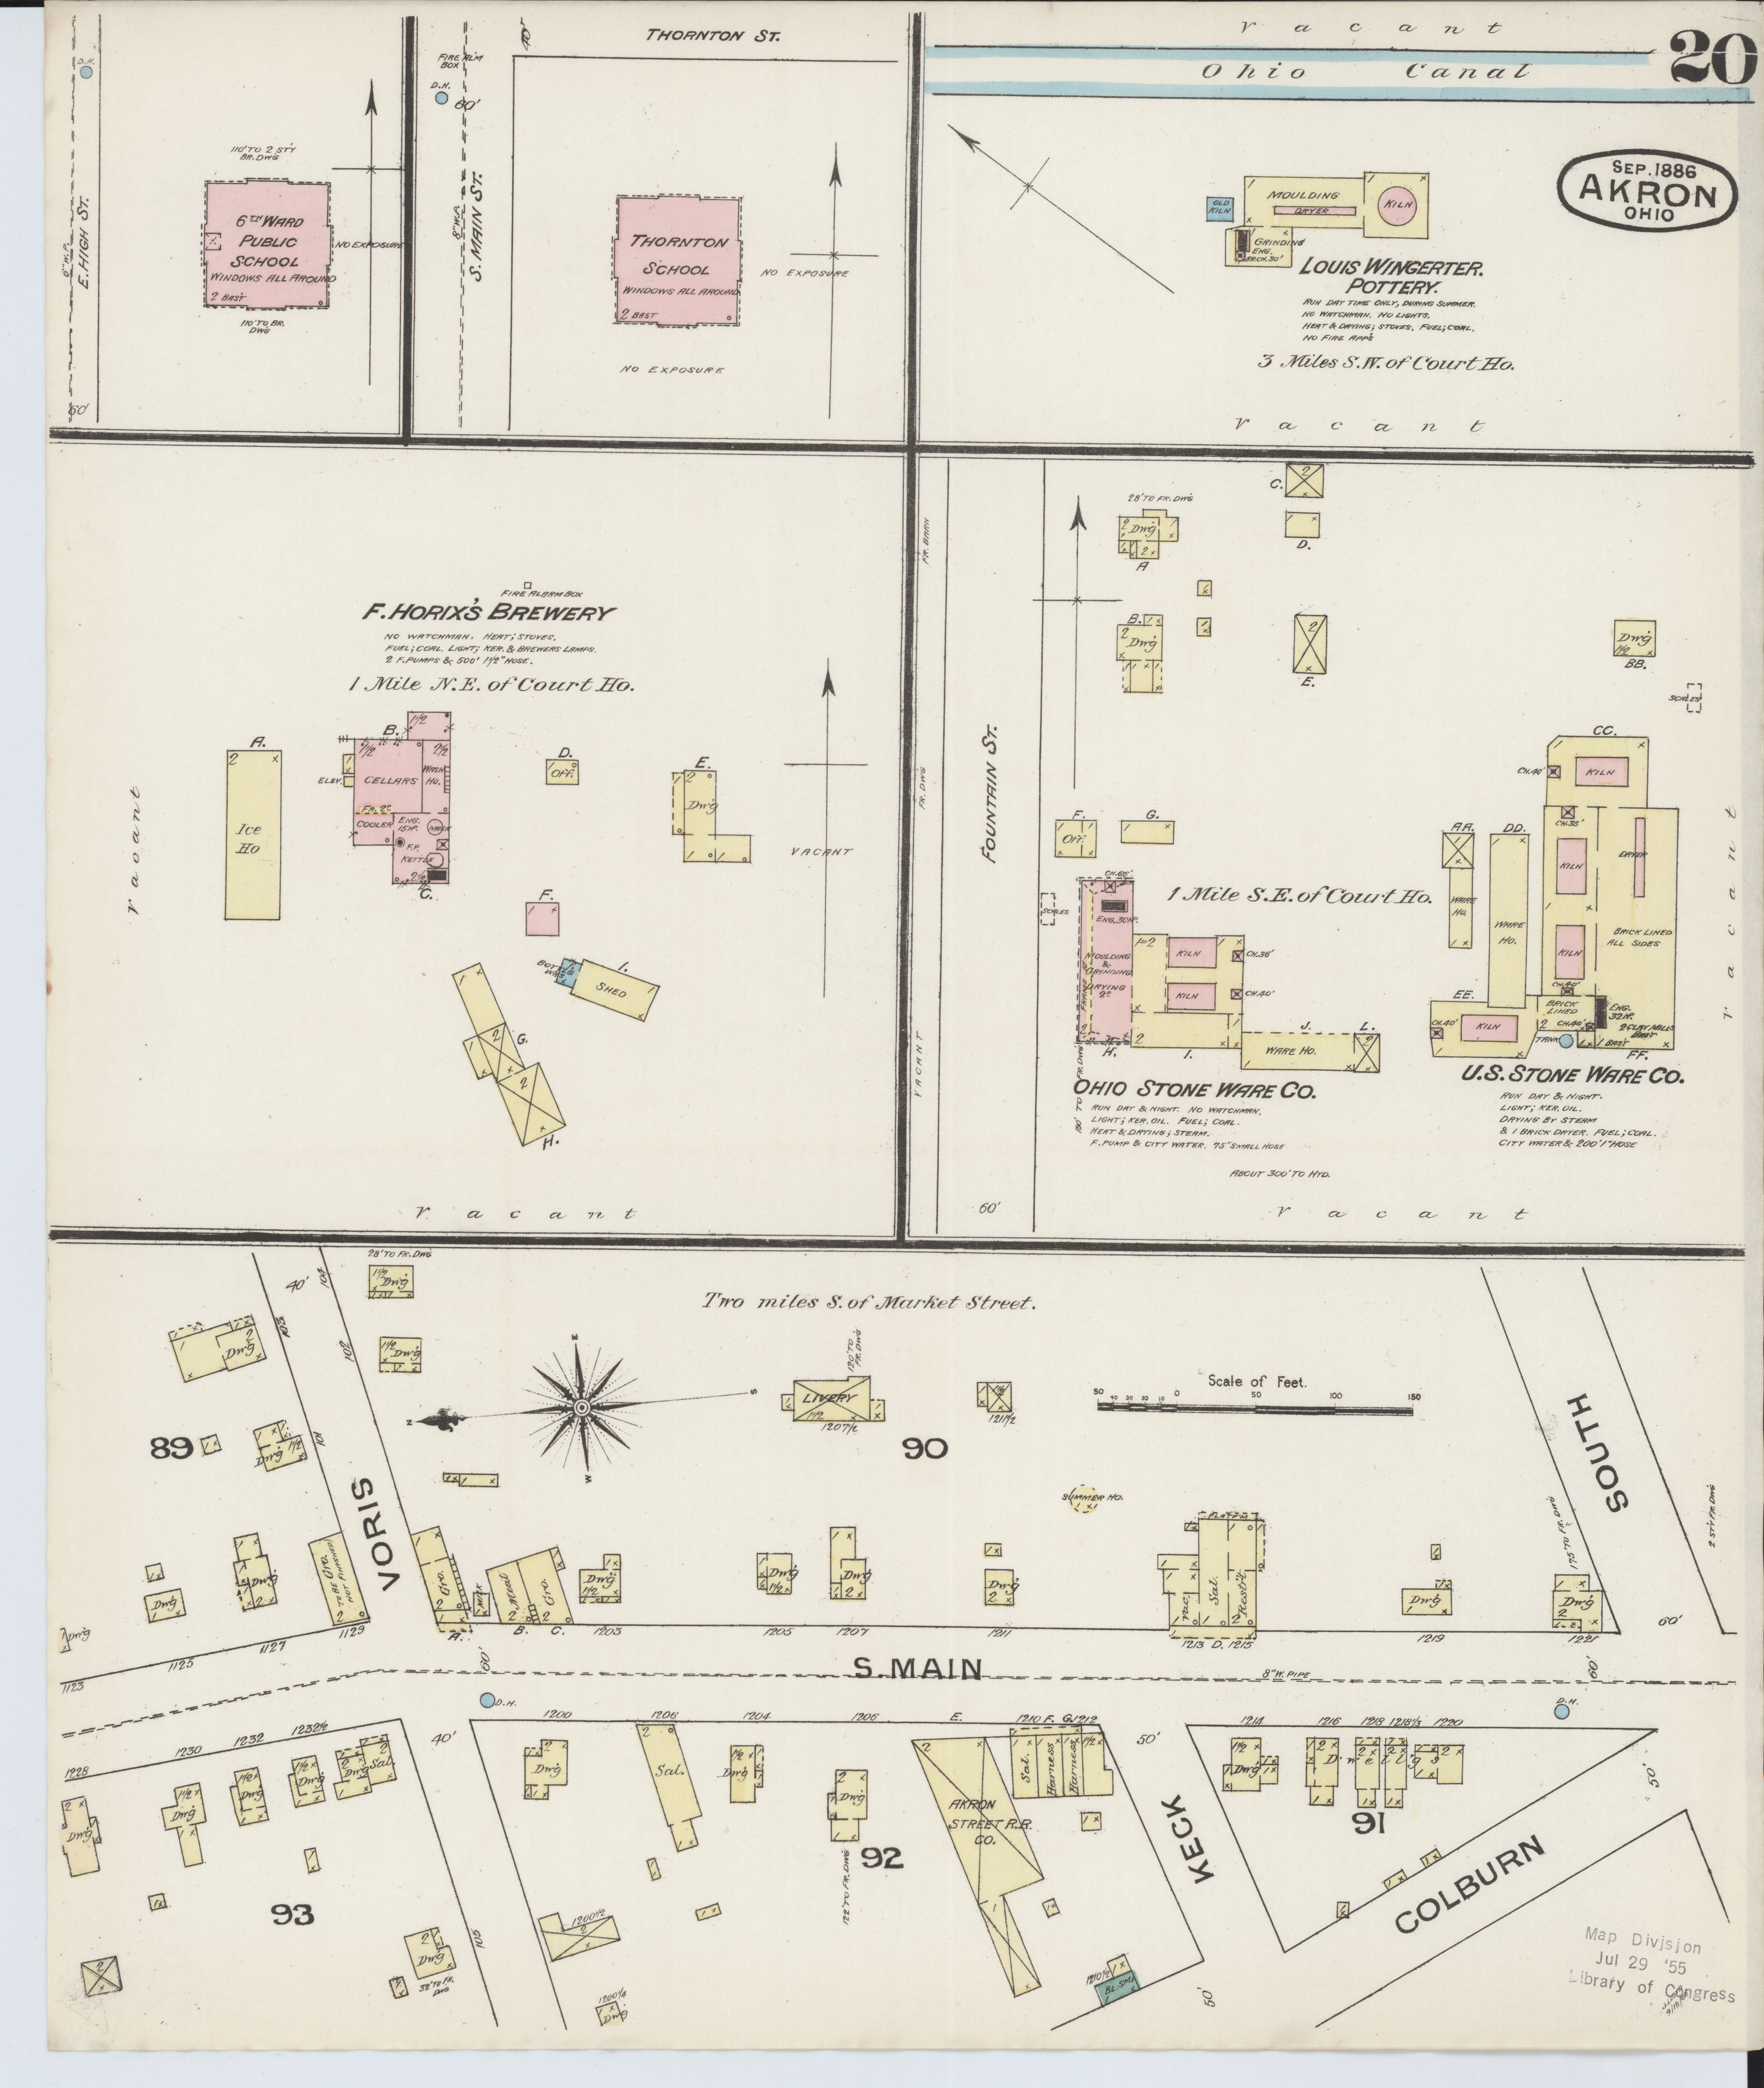 File:Sanborn Fire Insurance Map from Akron, Summit County ... on street map of fairlawn ohio, map of grand lake ohio, map of montrose ohio, map of berlin heights ohio, map of bratenahl ohio, map of sharon center ohio, map of frazeysburg ohio, map of walbridge ohio, map of copley ohio, map of cuyahoga river ohio, map of new holland ohio, map of california ohio, map of cincinnati ohio, map of new york ohio, map of alger ohio, map of franklin township ohio, map of black river ohio, map of nashville ohio, map of cuyahoga falls ohio, map of canton ohio,